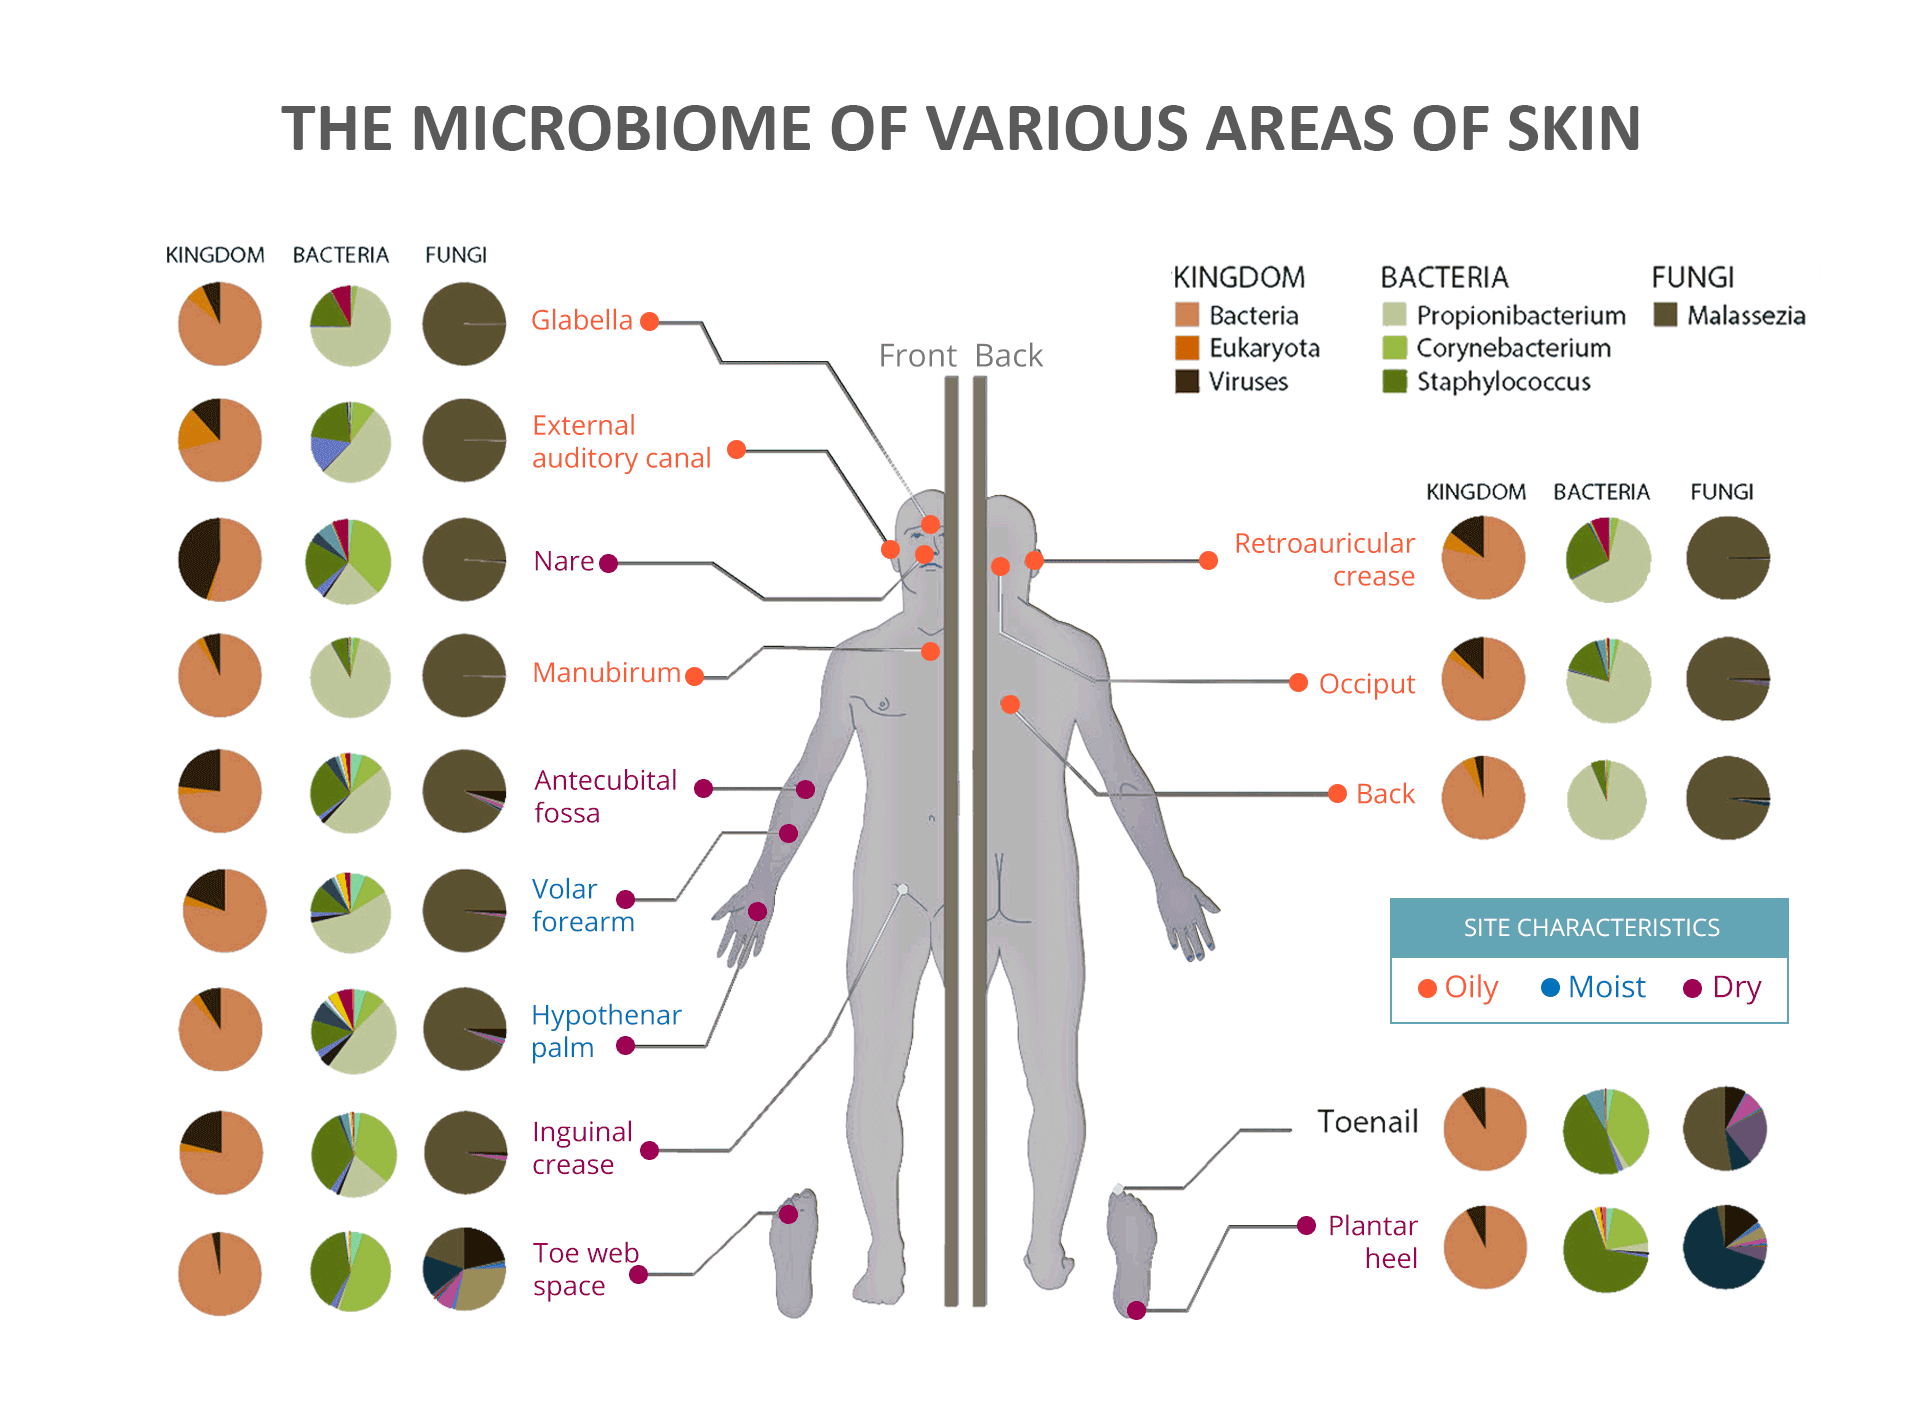 The Microbiome of Various Areas of the Skin - Microbial and Fungi Communities and Skin Characteristics